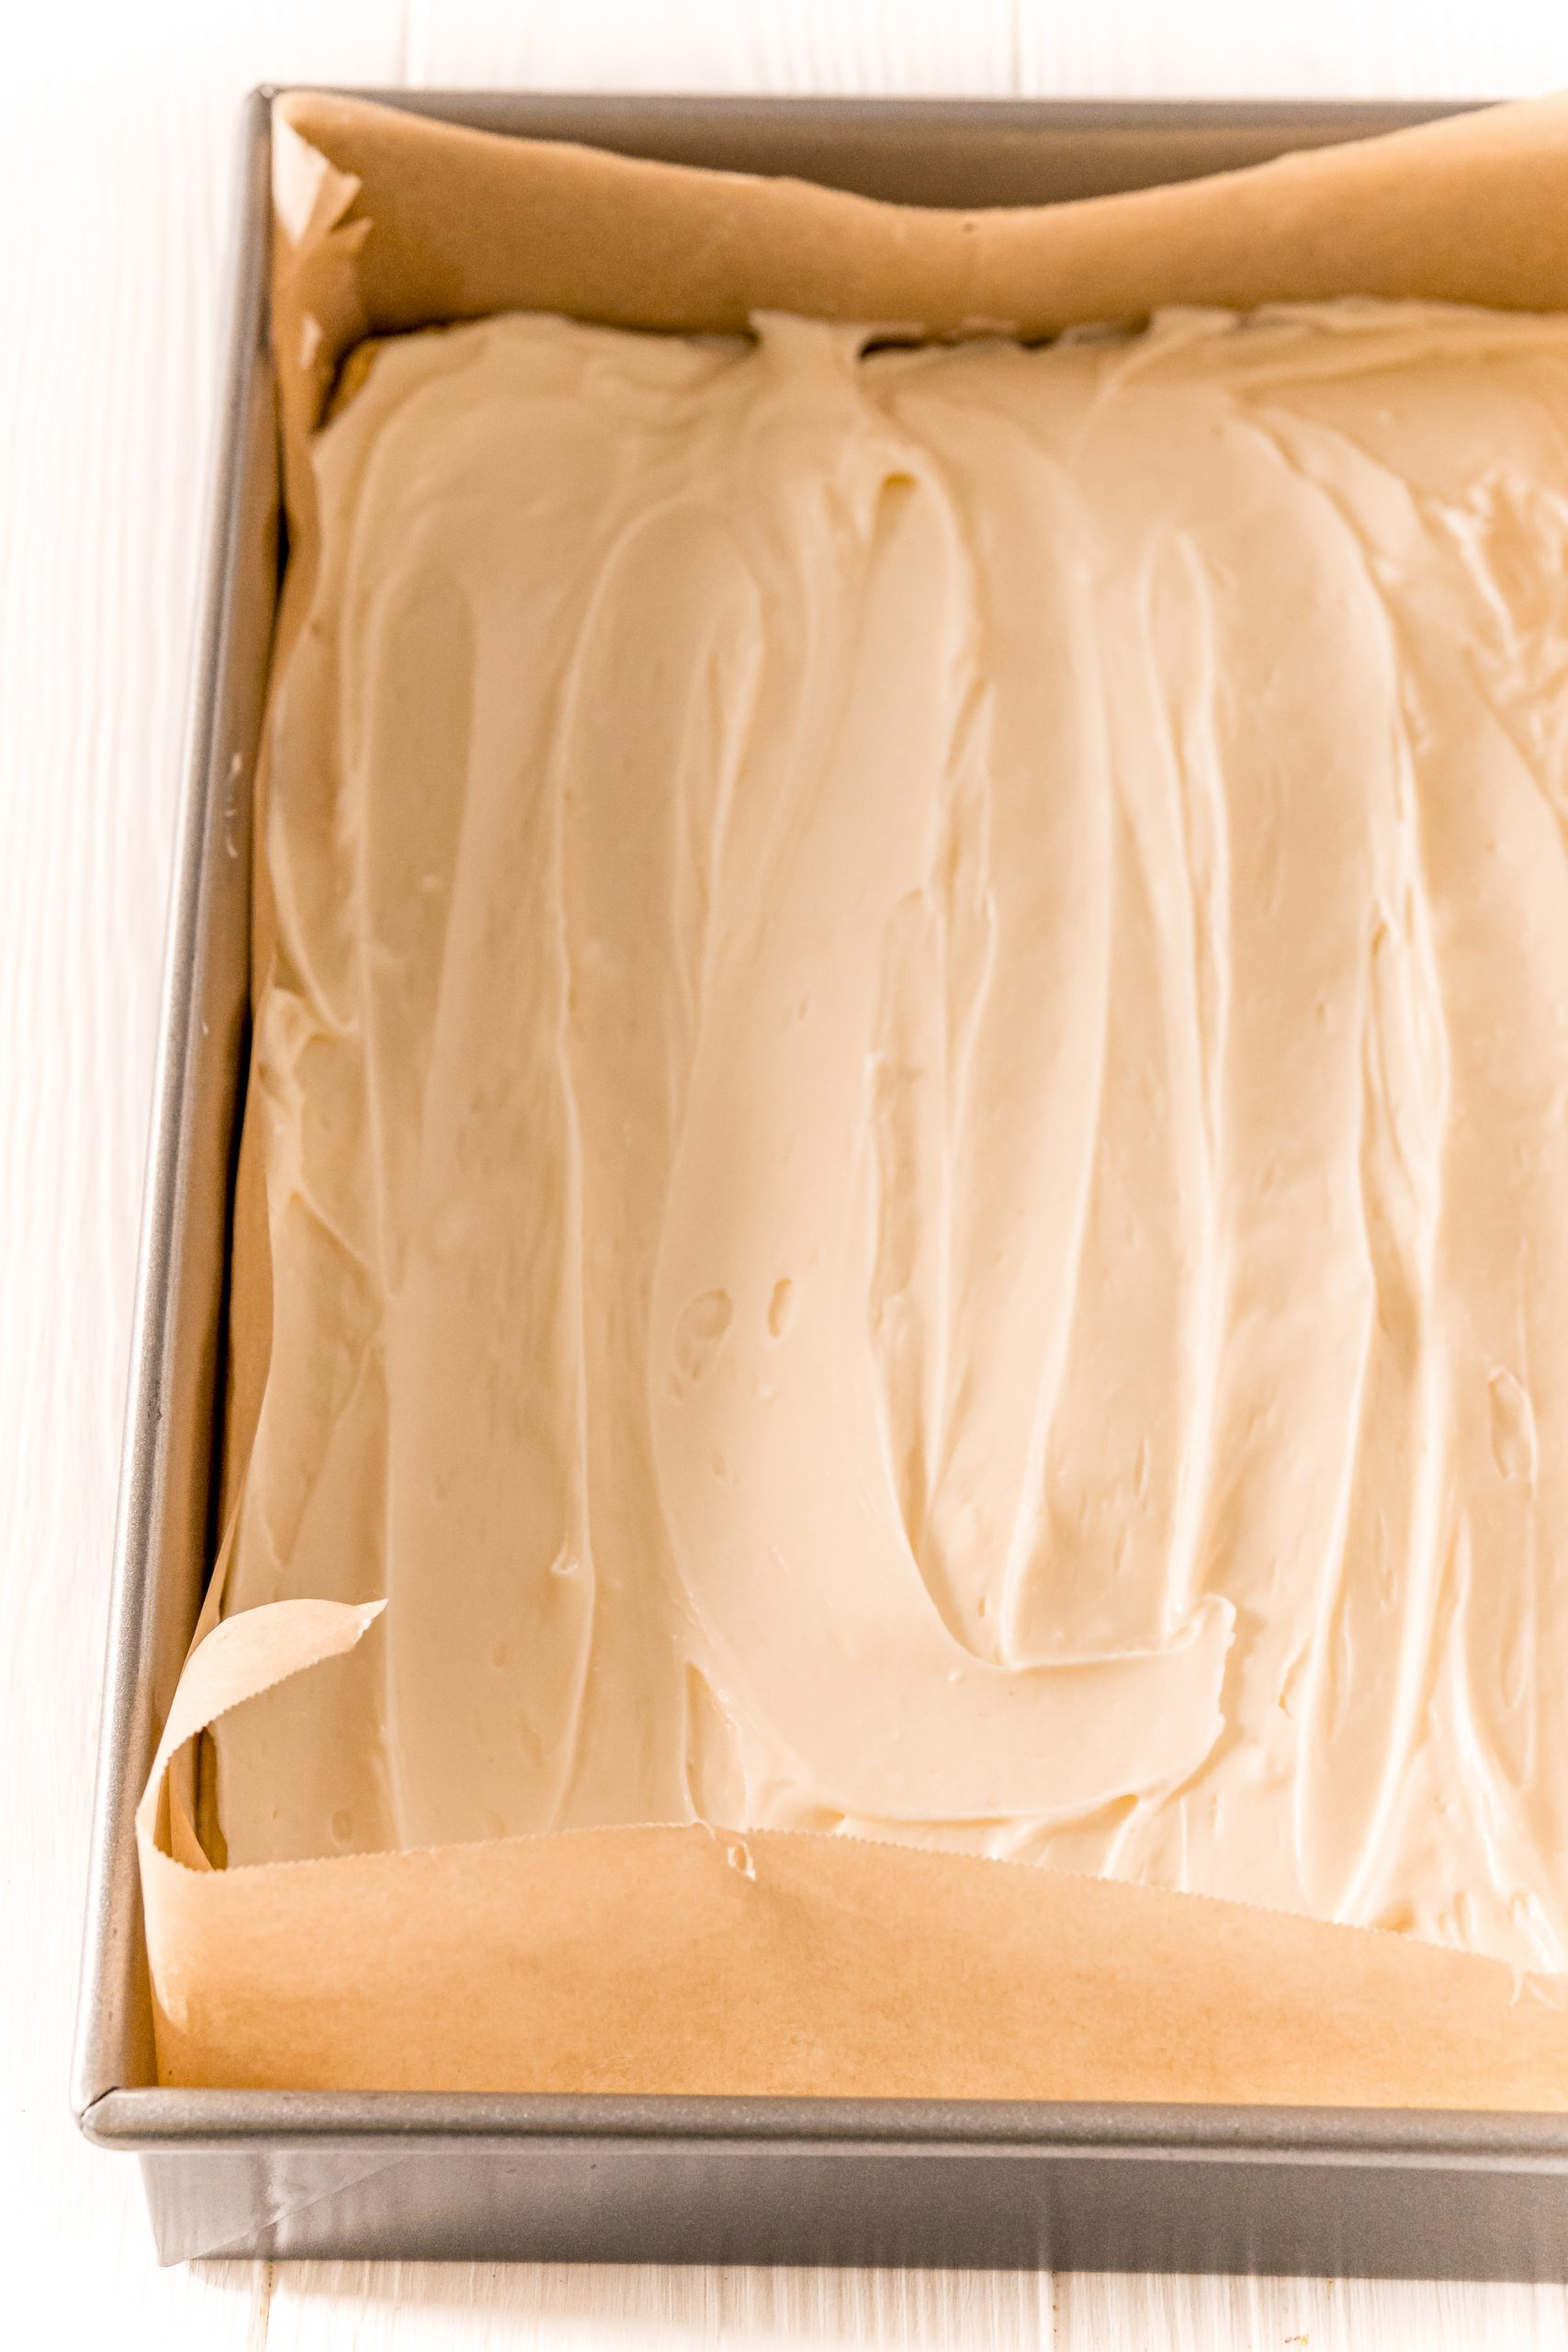 picture of dough and cream cheese in a baking dish with parchment paper